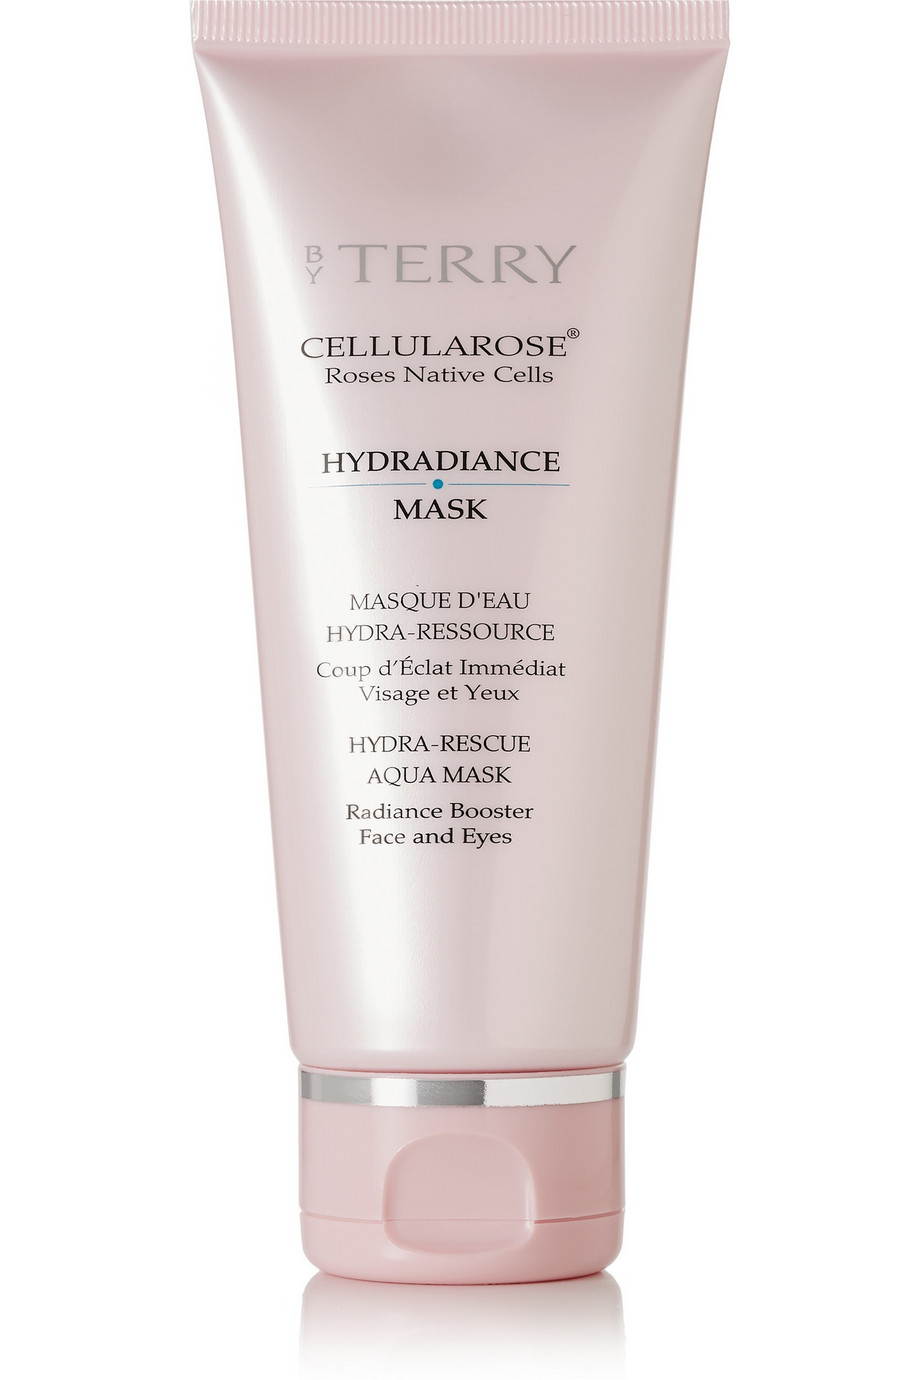 Hydradiance Mask, 100g, by By Terry